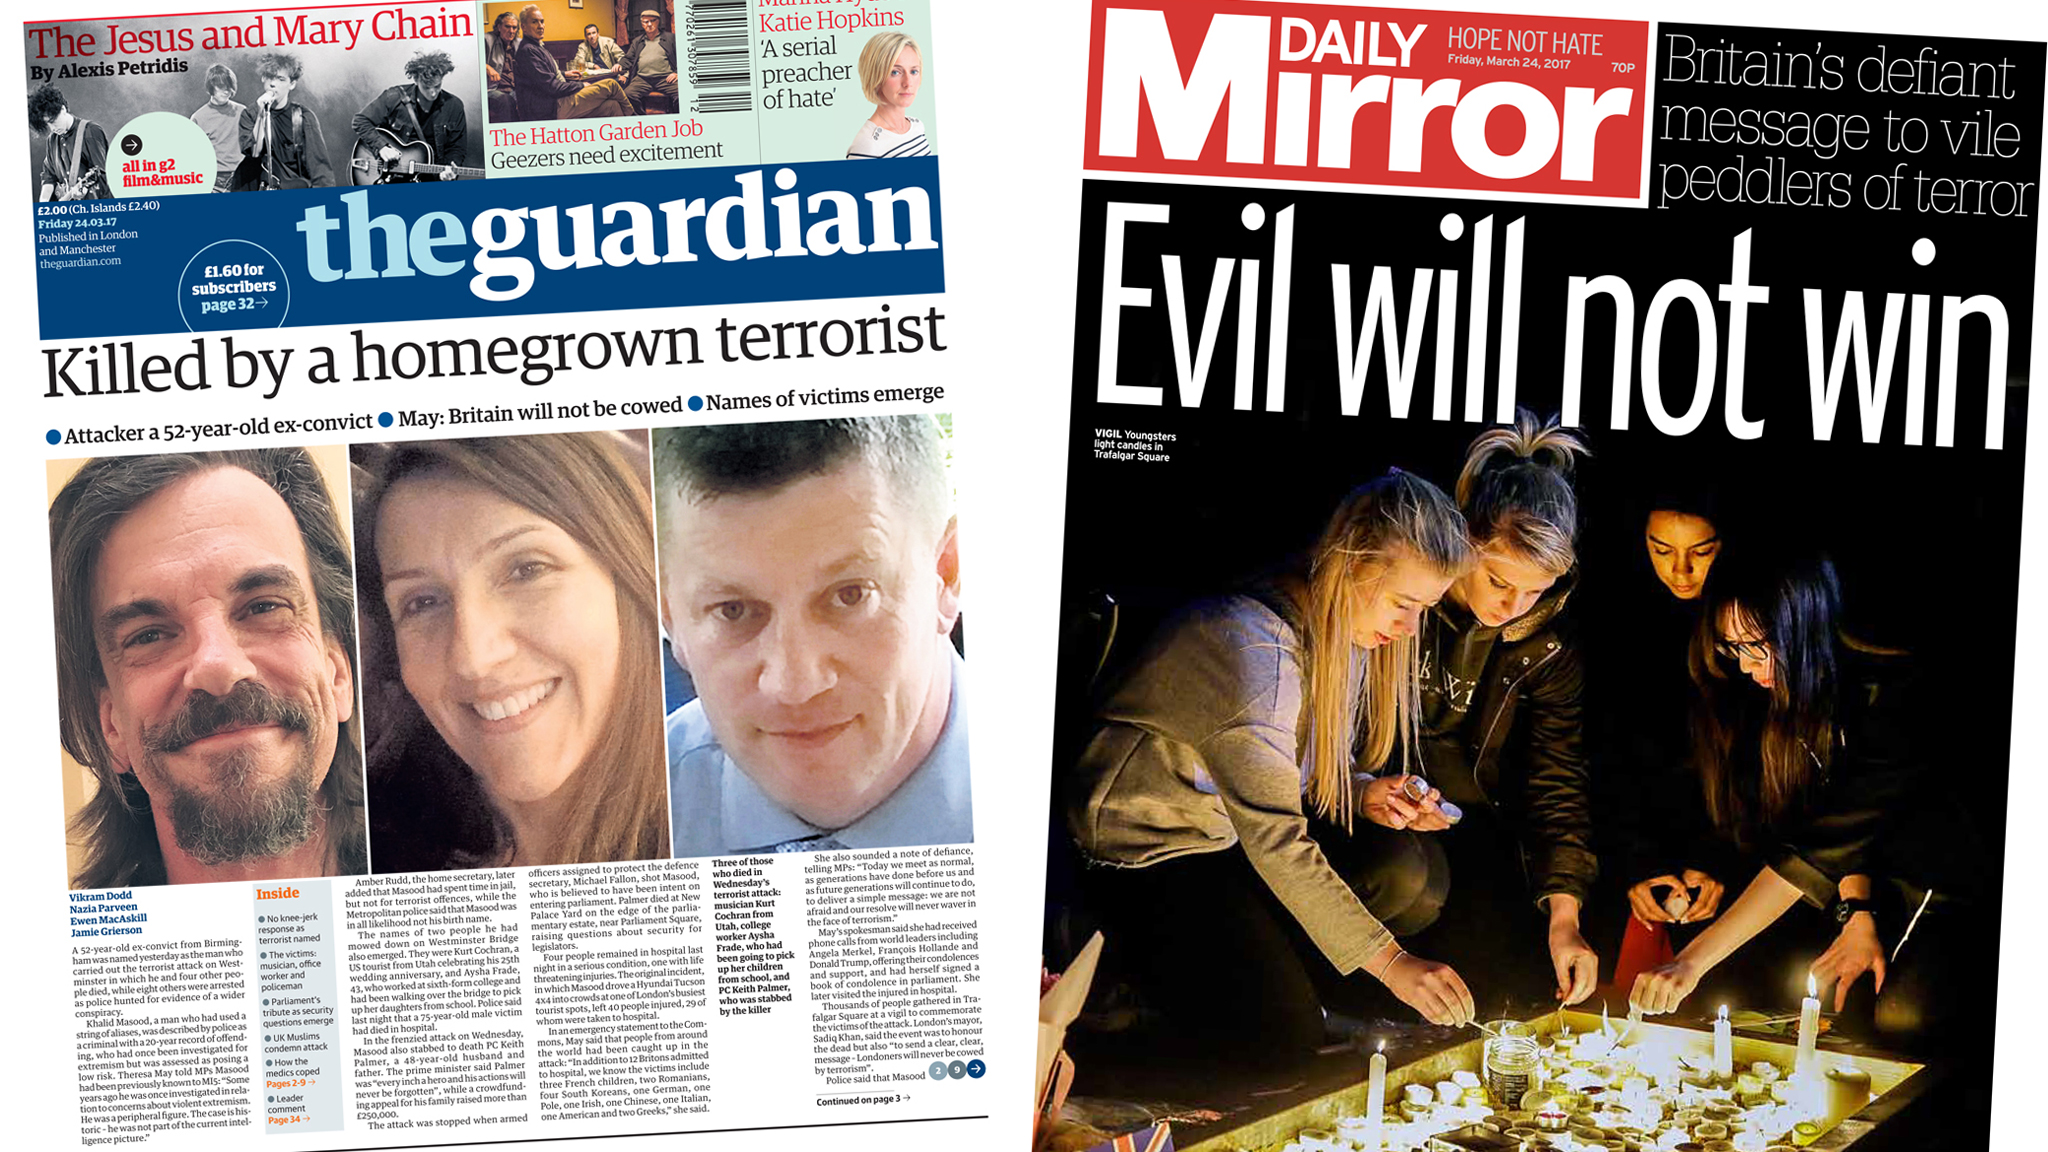 'The homegrown terrorist' and UK's 'defiant' response